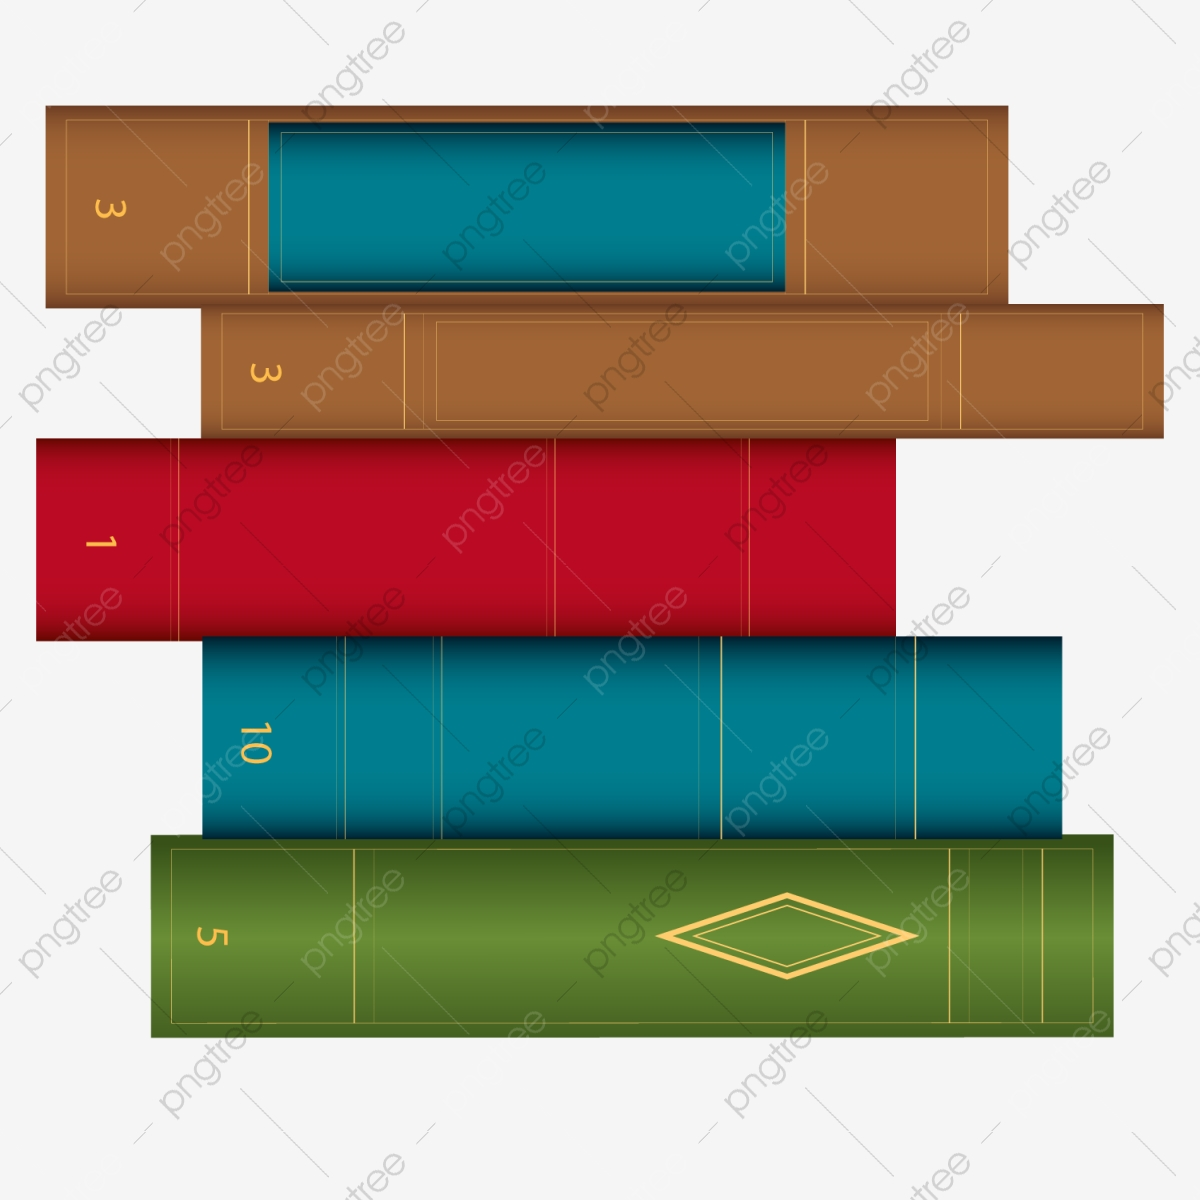 Law Books, Legal, Books, Cartoon PNG Transparent Clipart Image and.